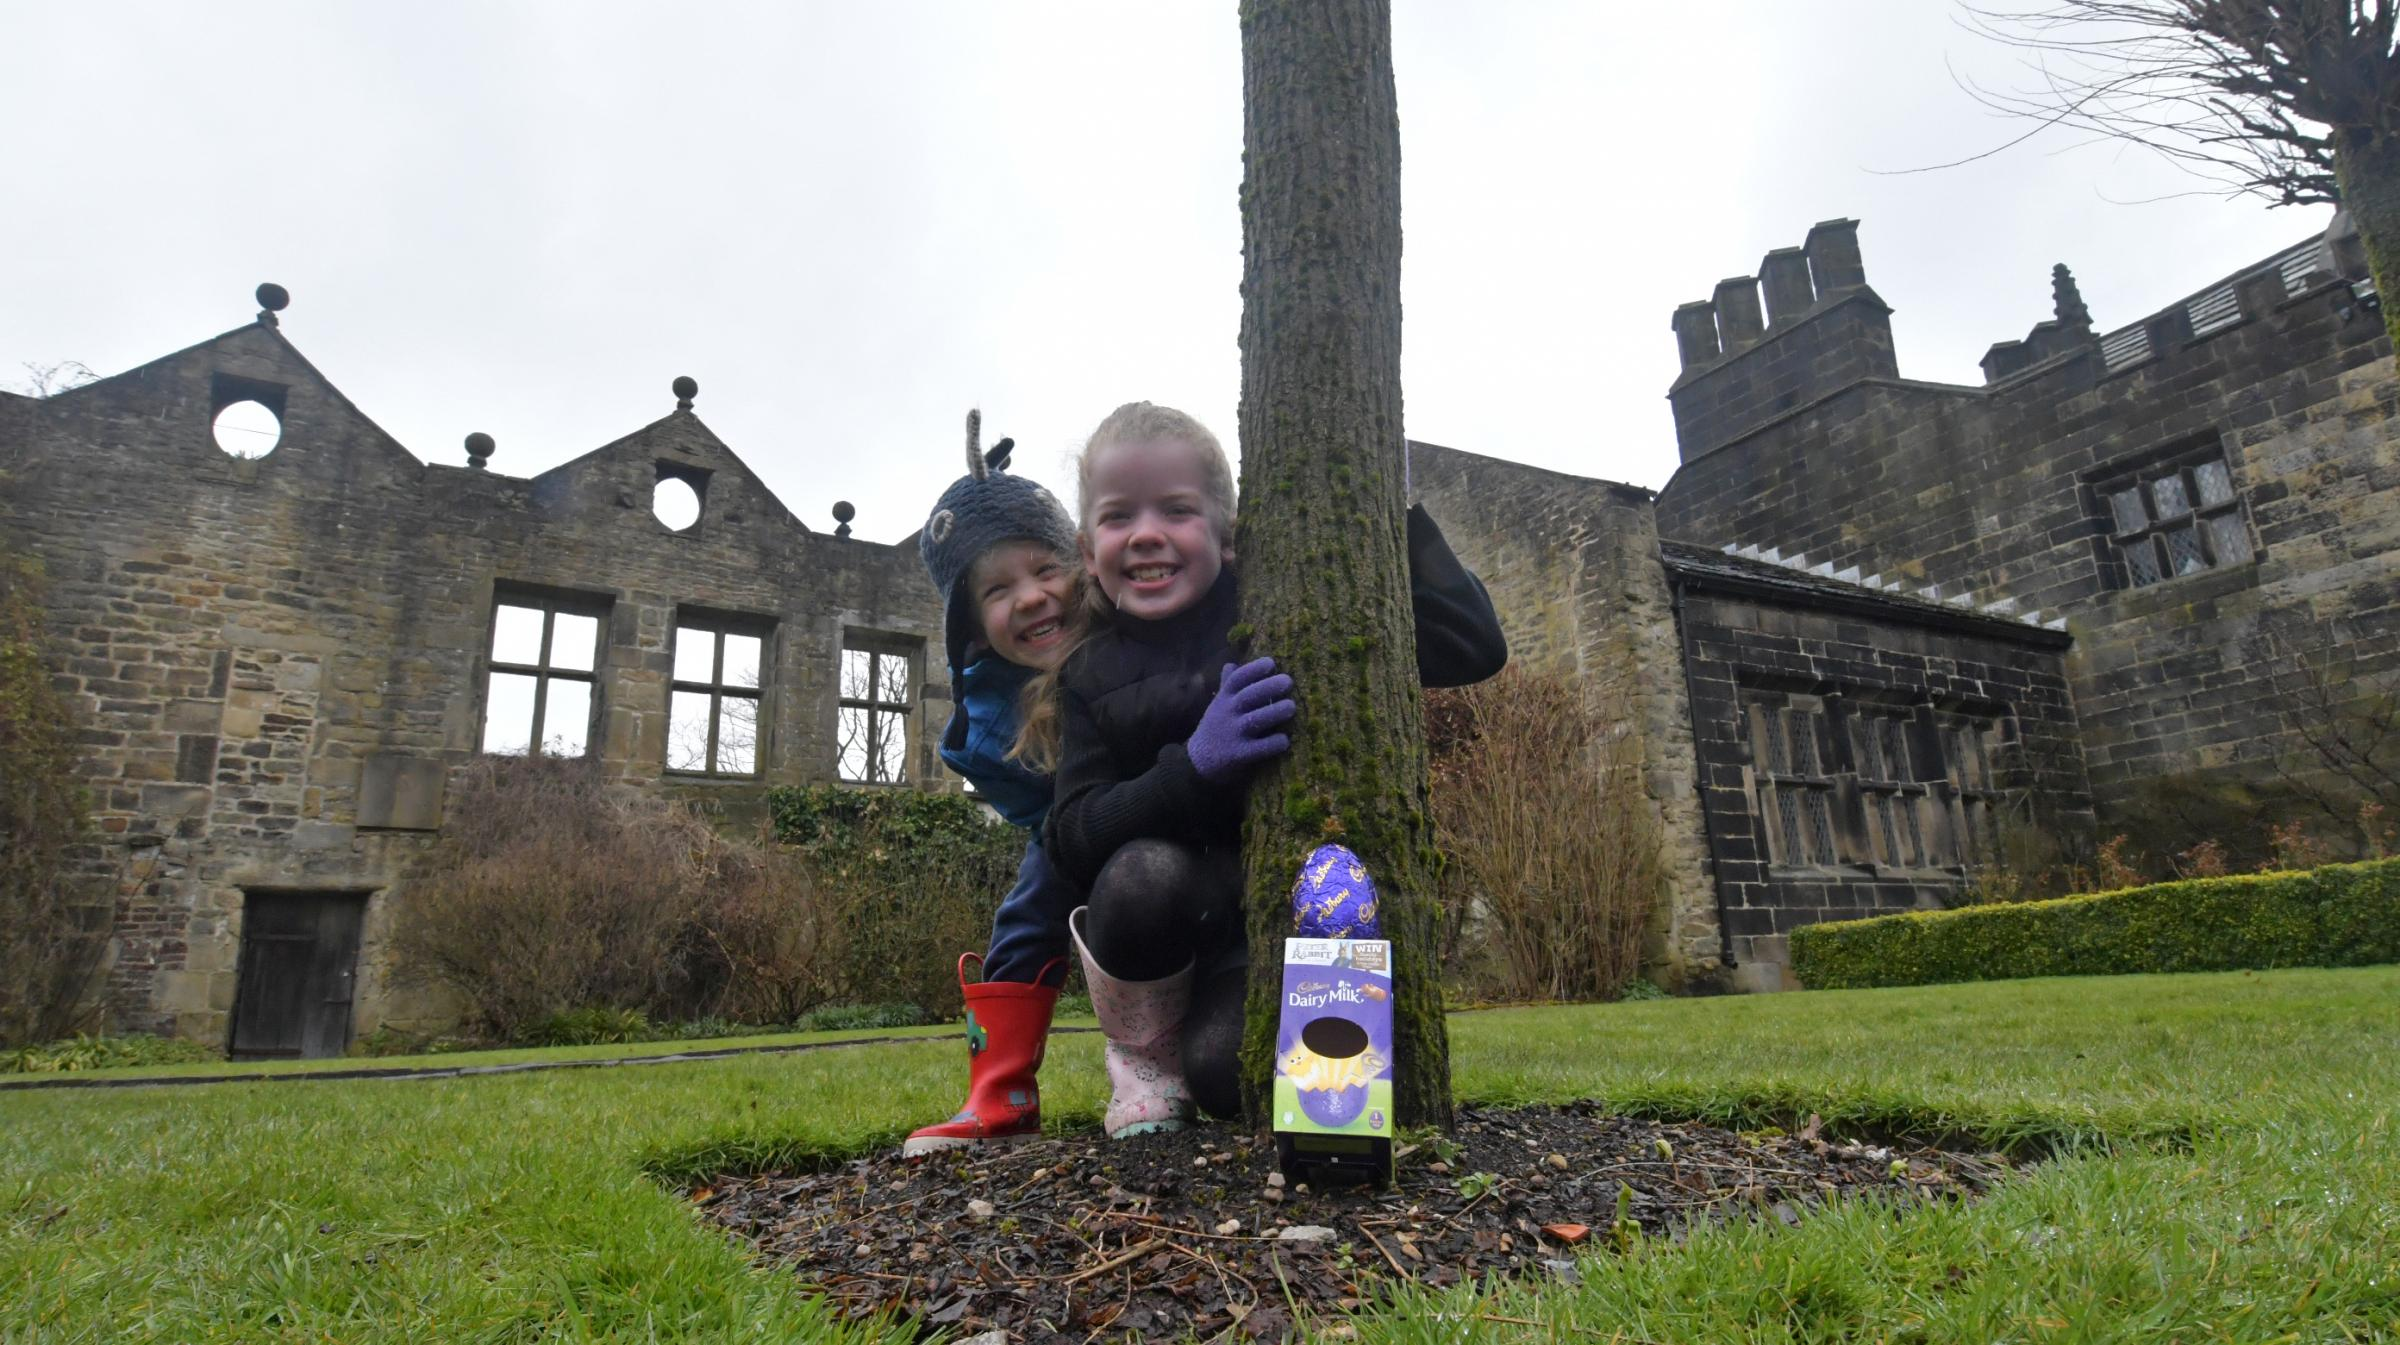 Last year's Cadbury's Easter Egg Hunt at East Riddlesden Hall proved popular with these two youngsters